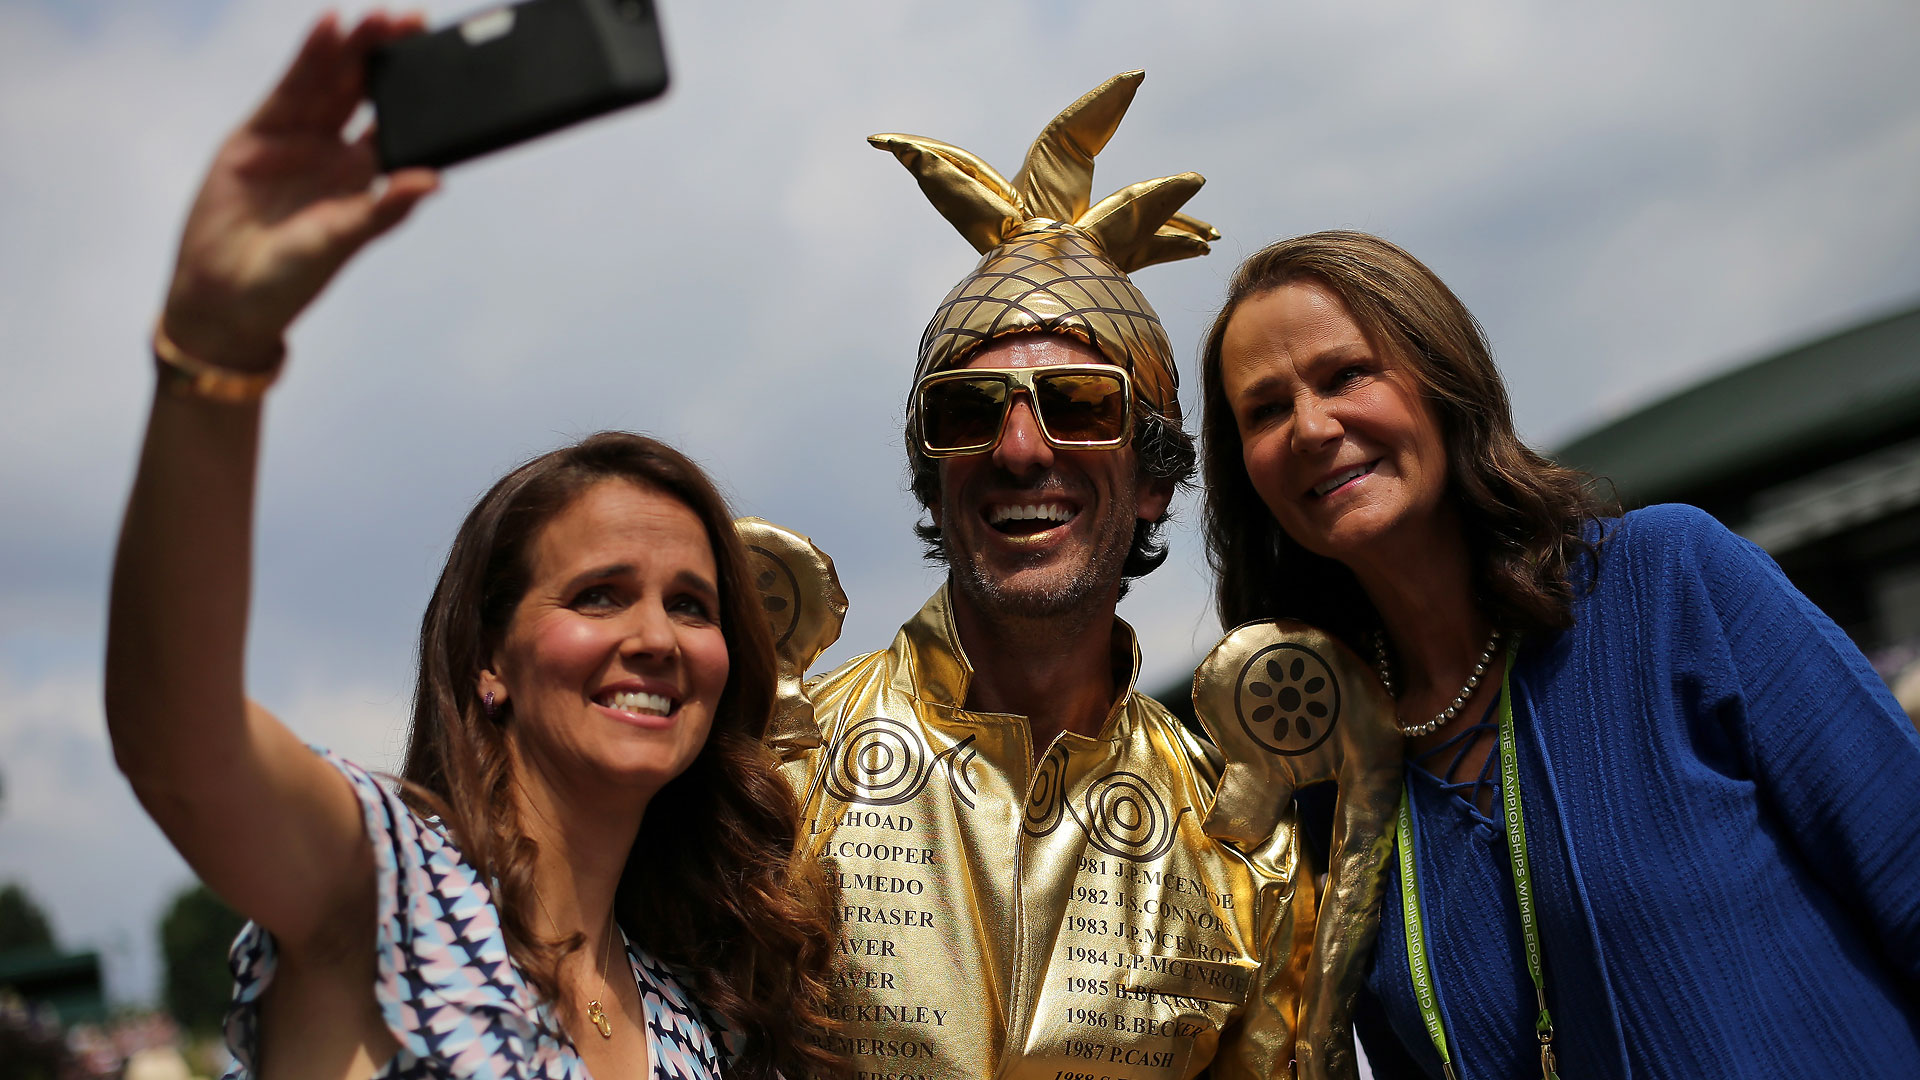 Mary Joe Fernandez, Chris Fava and Pam Shriver